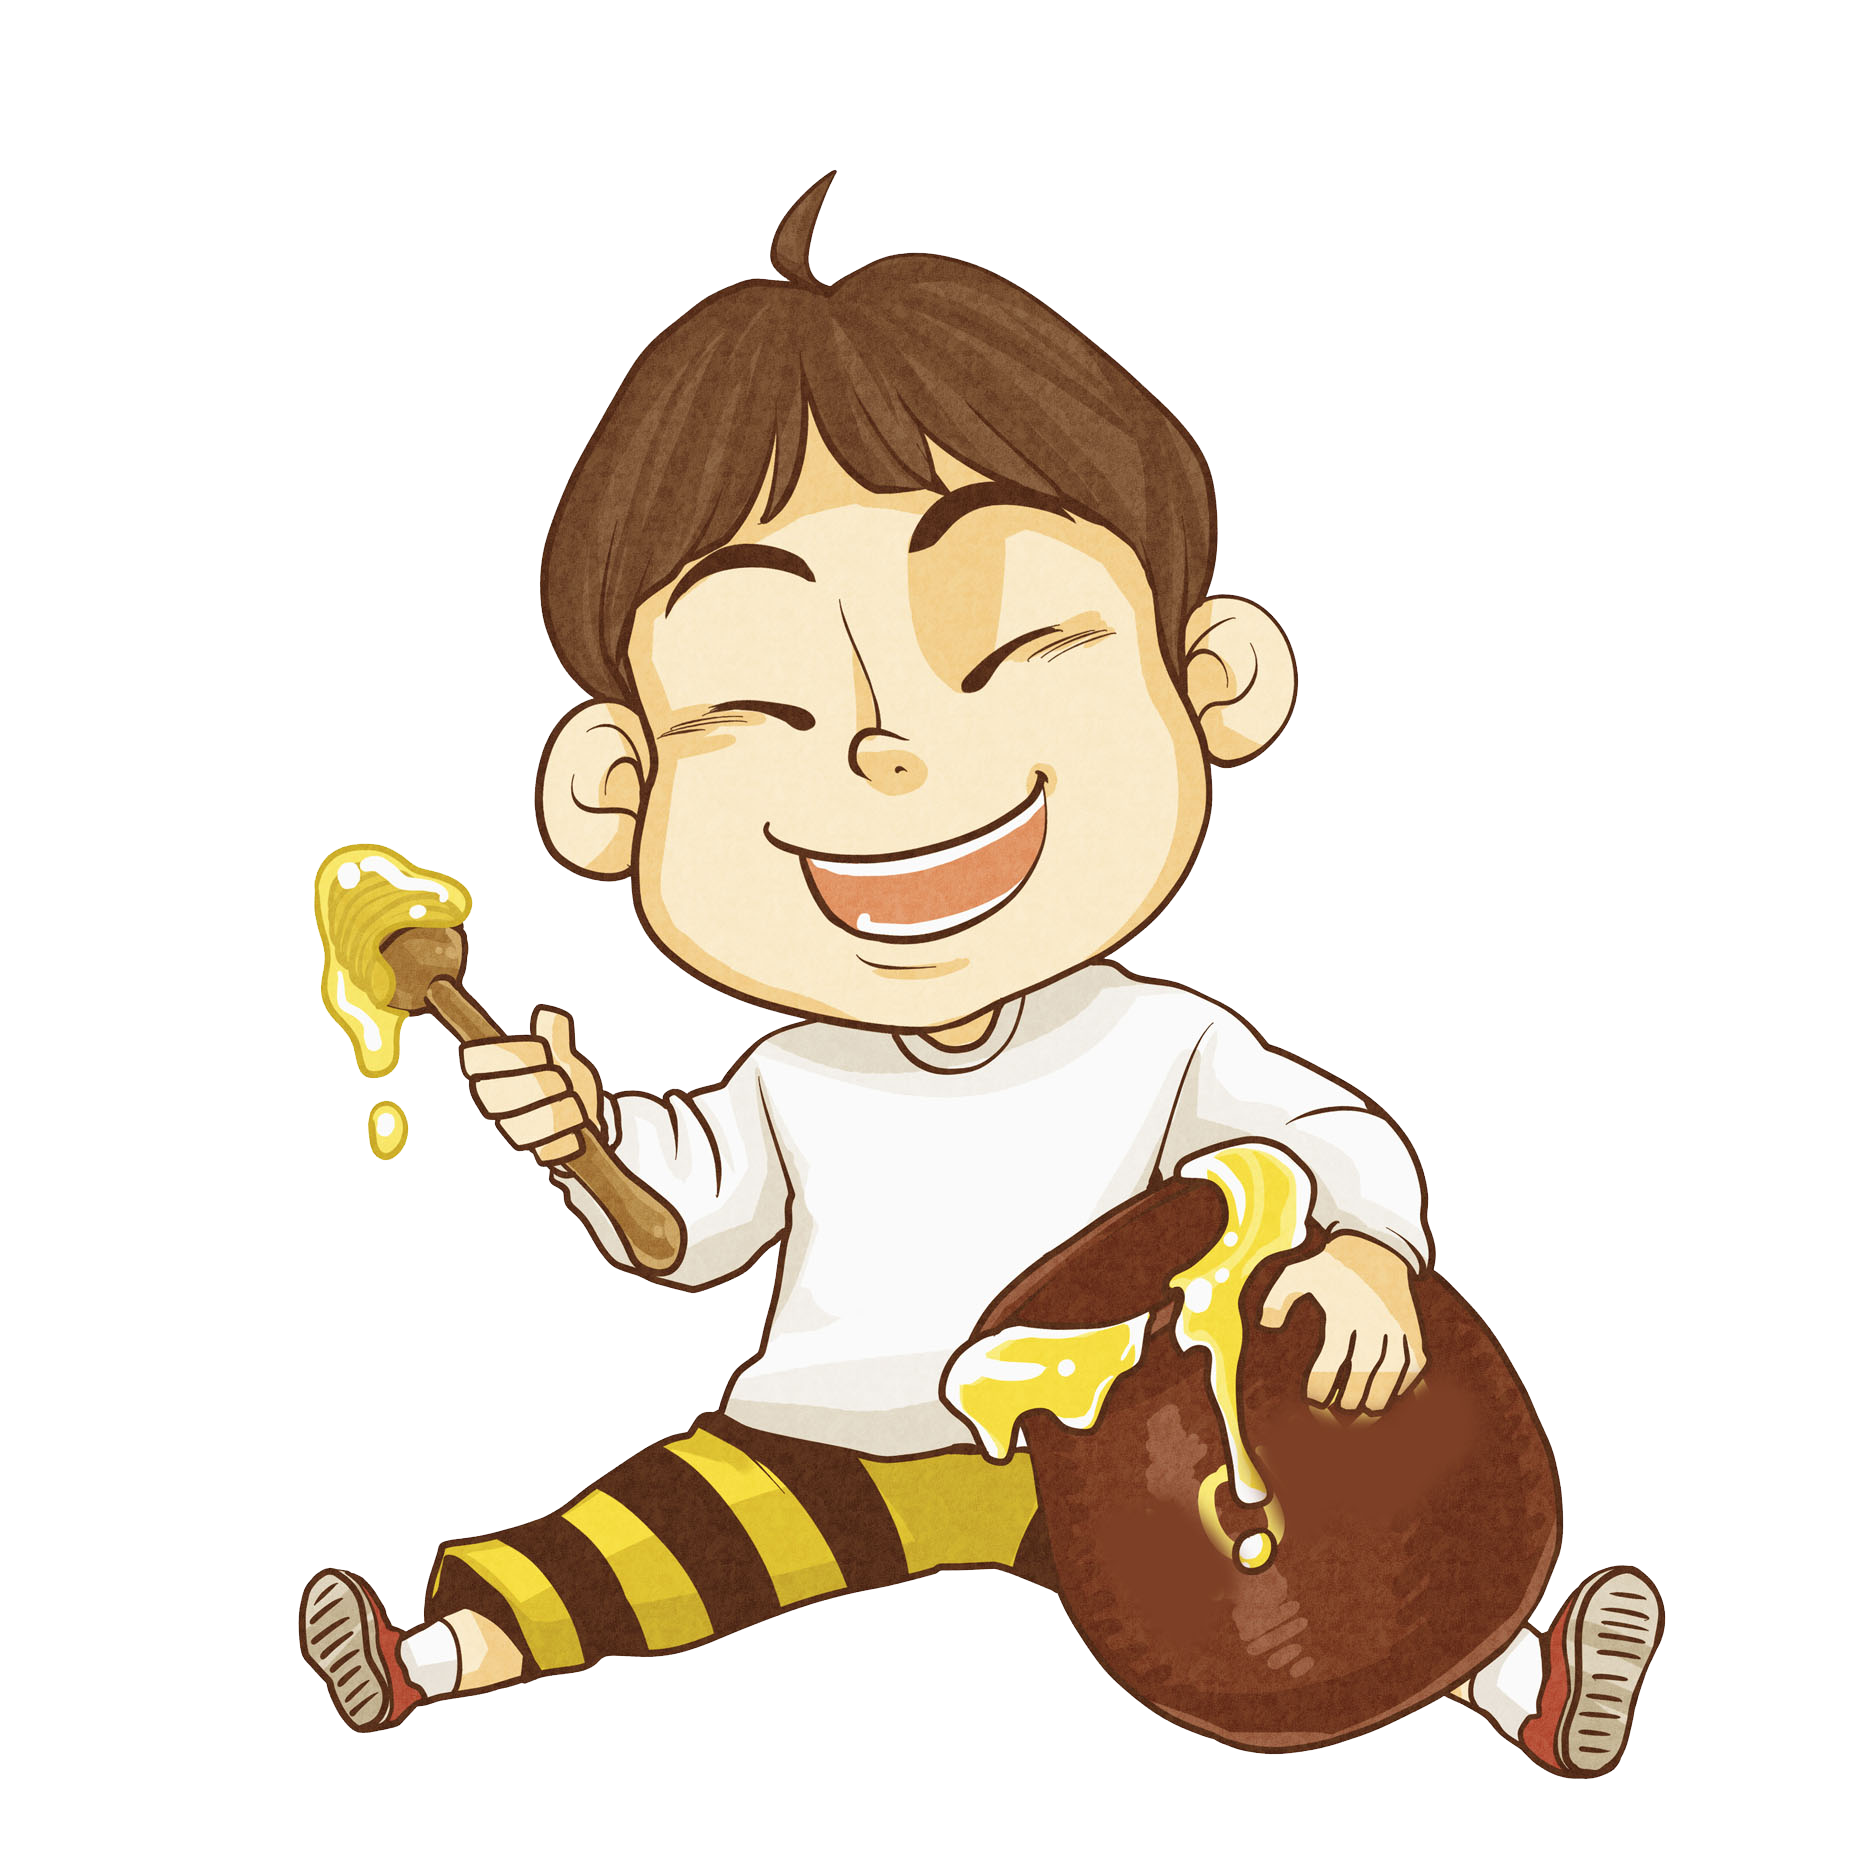 Fingers drawing happiness. Honey food eating little